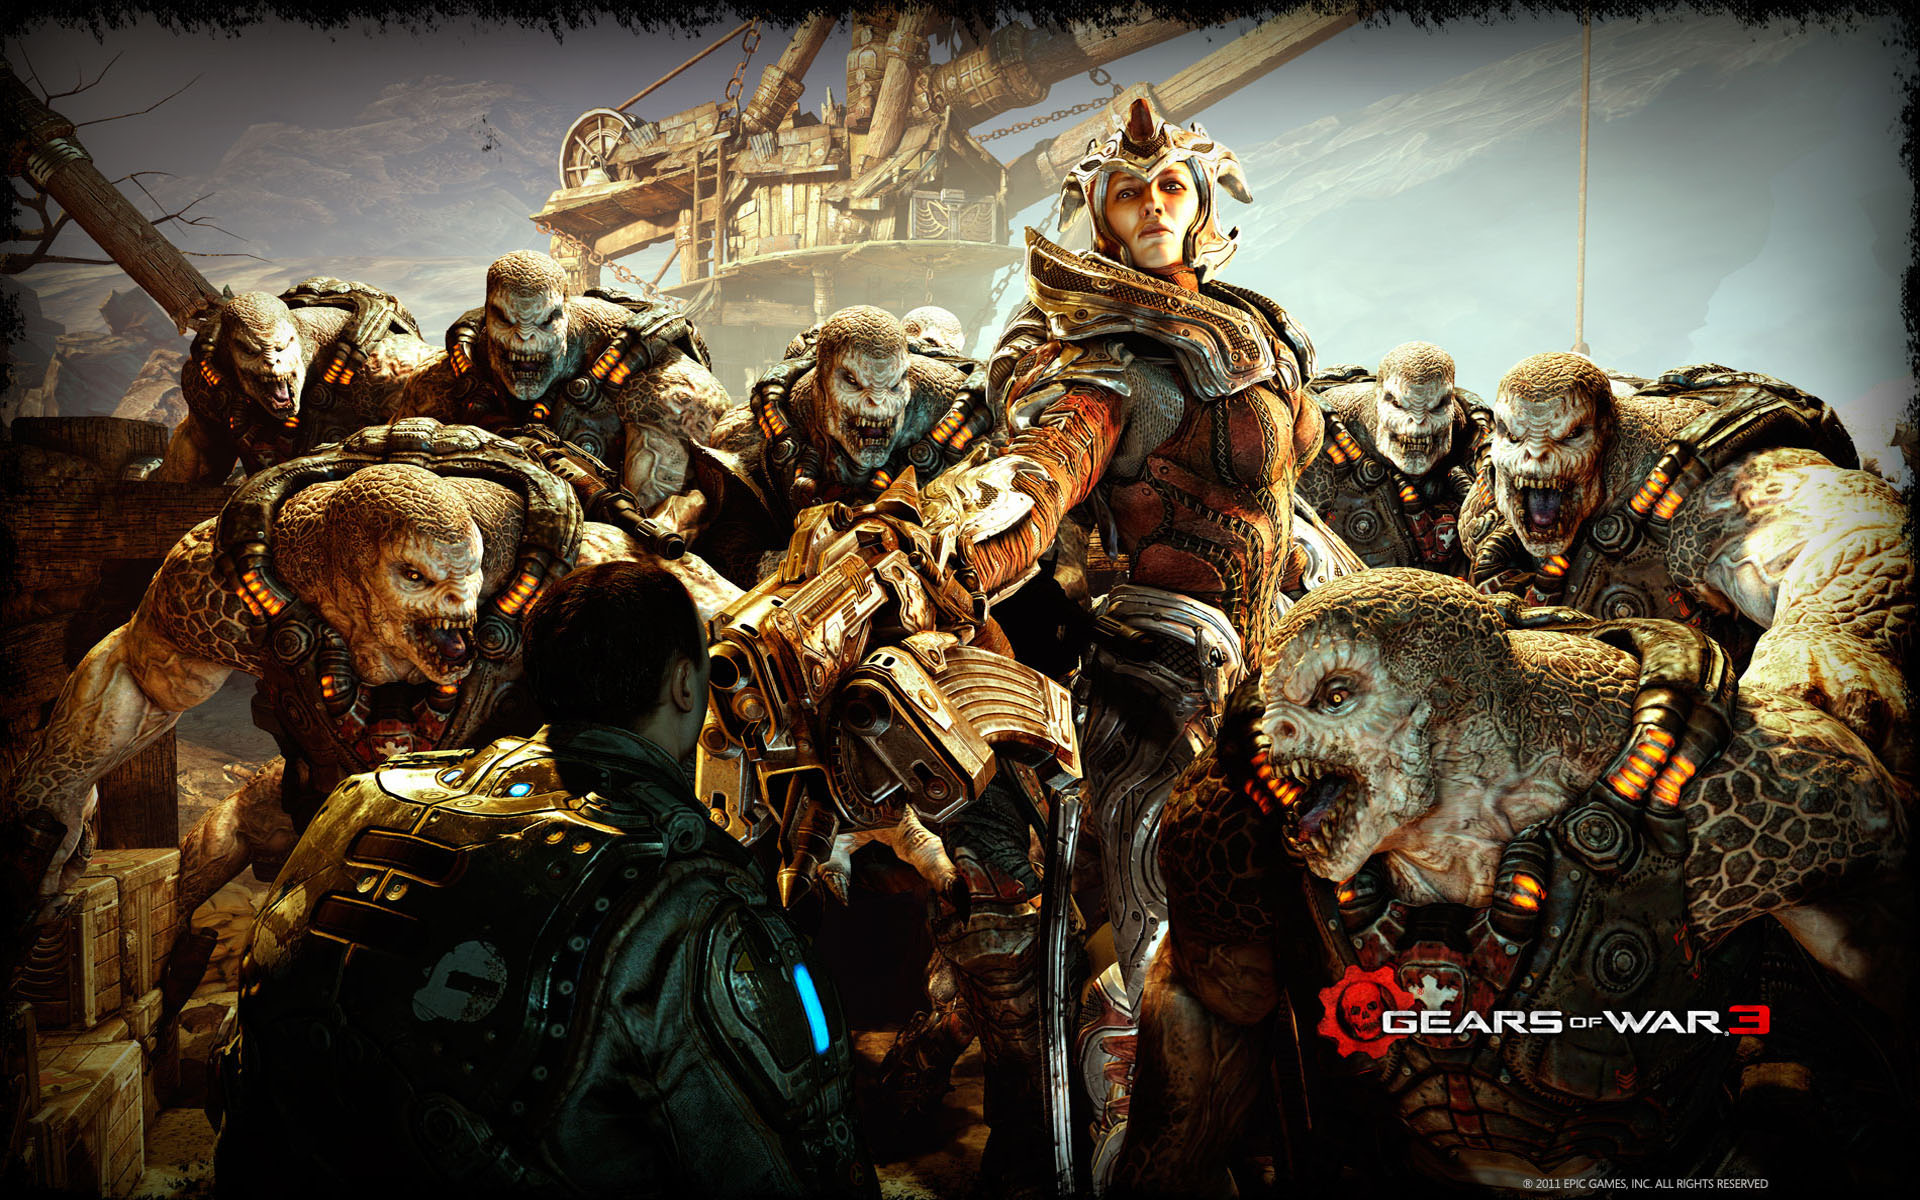 Gears of War 3 2011 2463.1 Kb